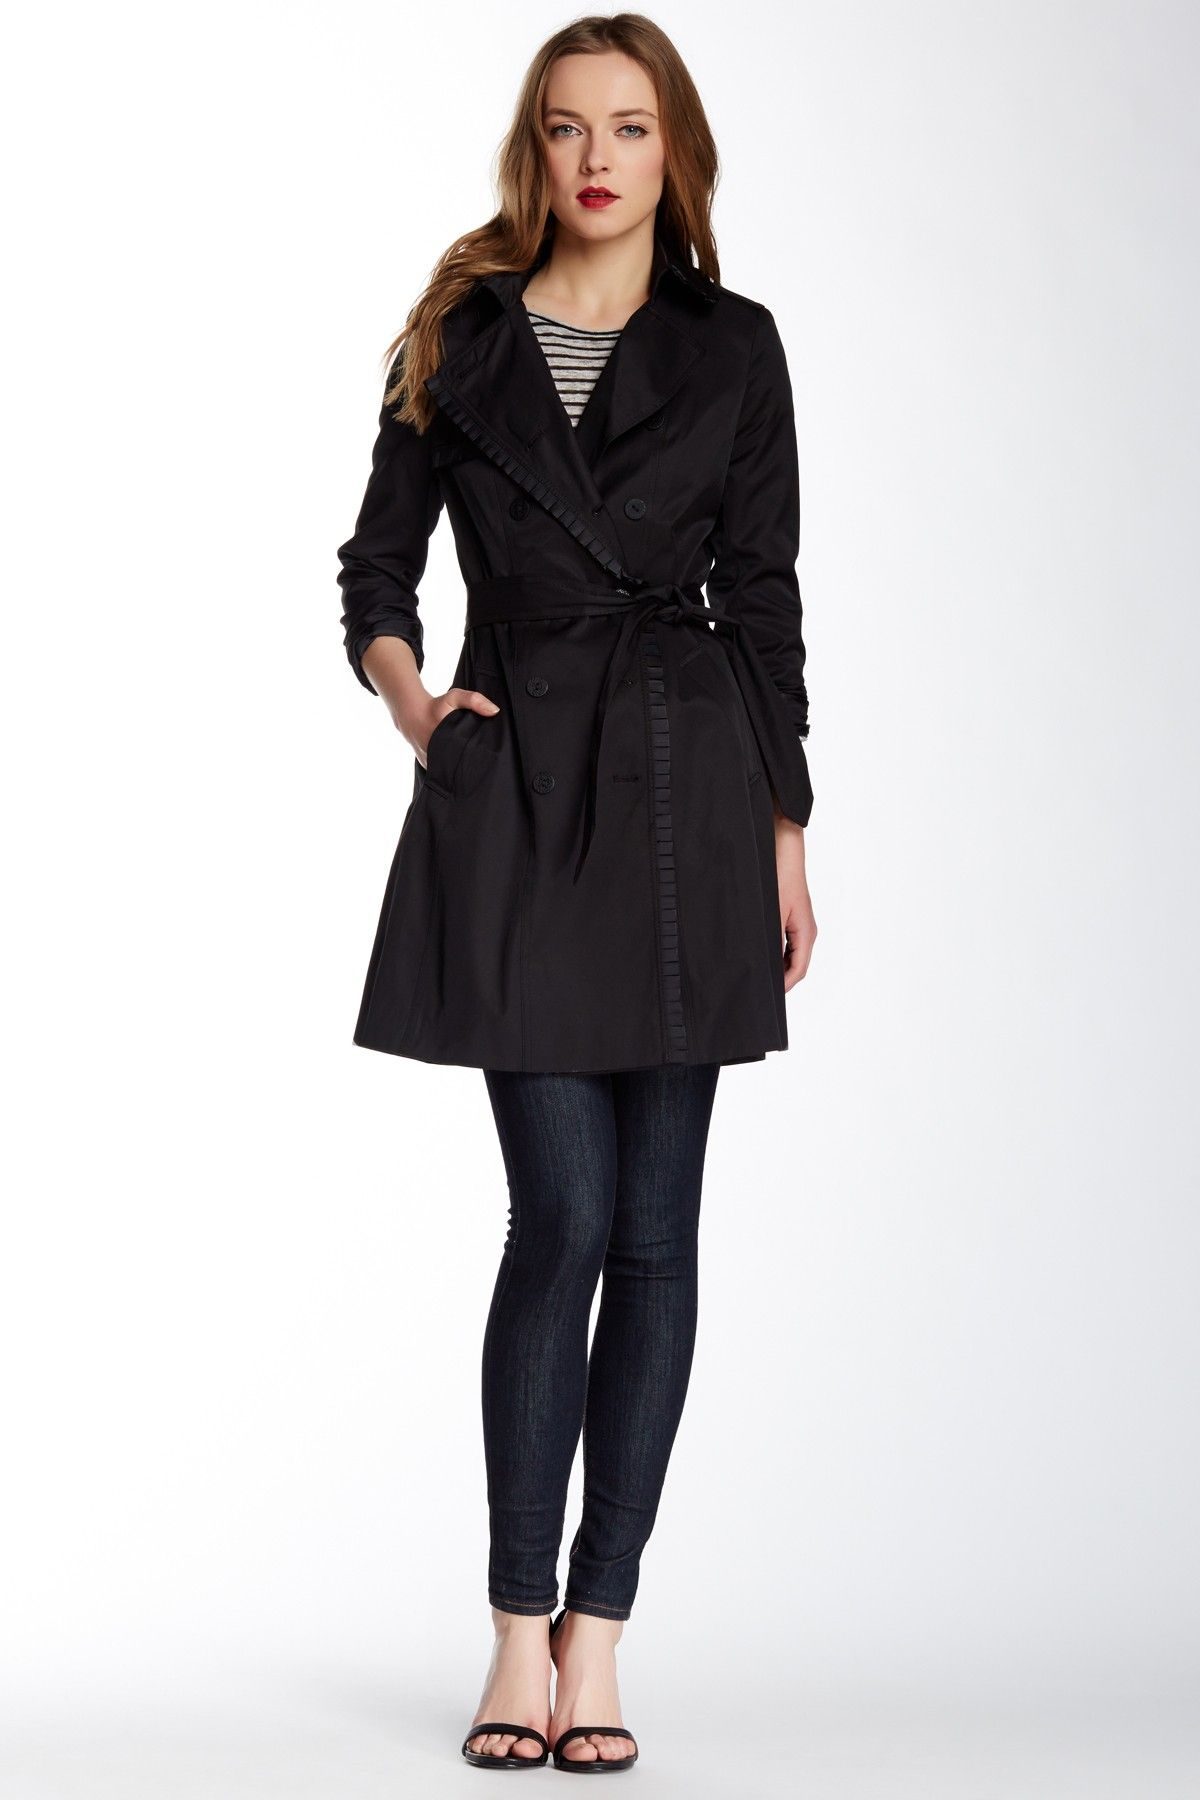 Mulberry Ruffle Trim Double Breasted Trench Coat by Tahari on @nordstrom_rack